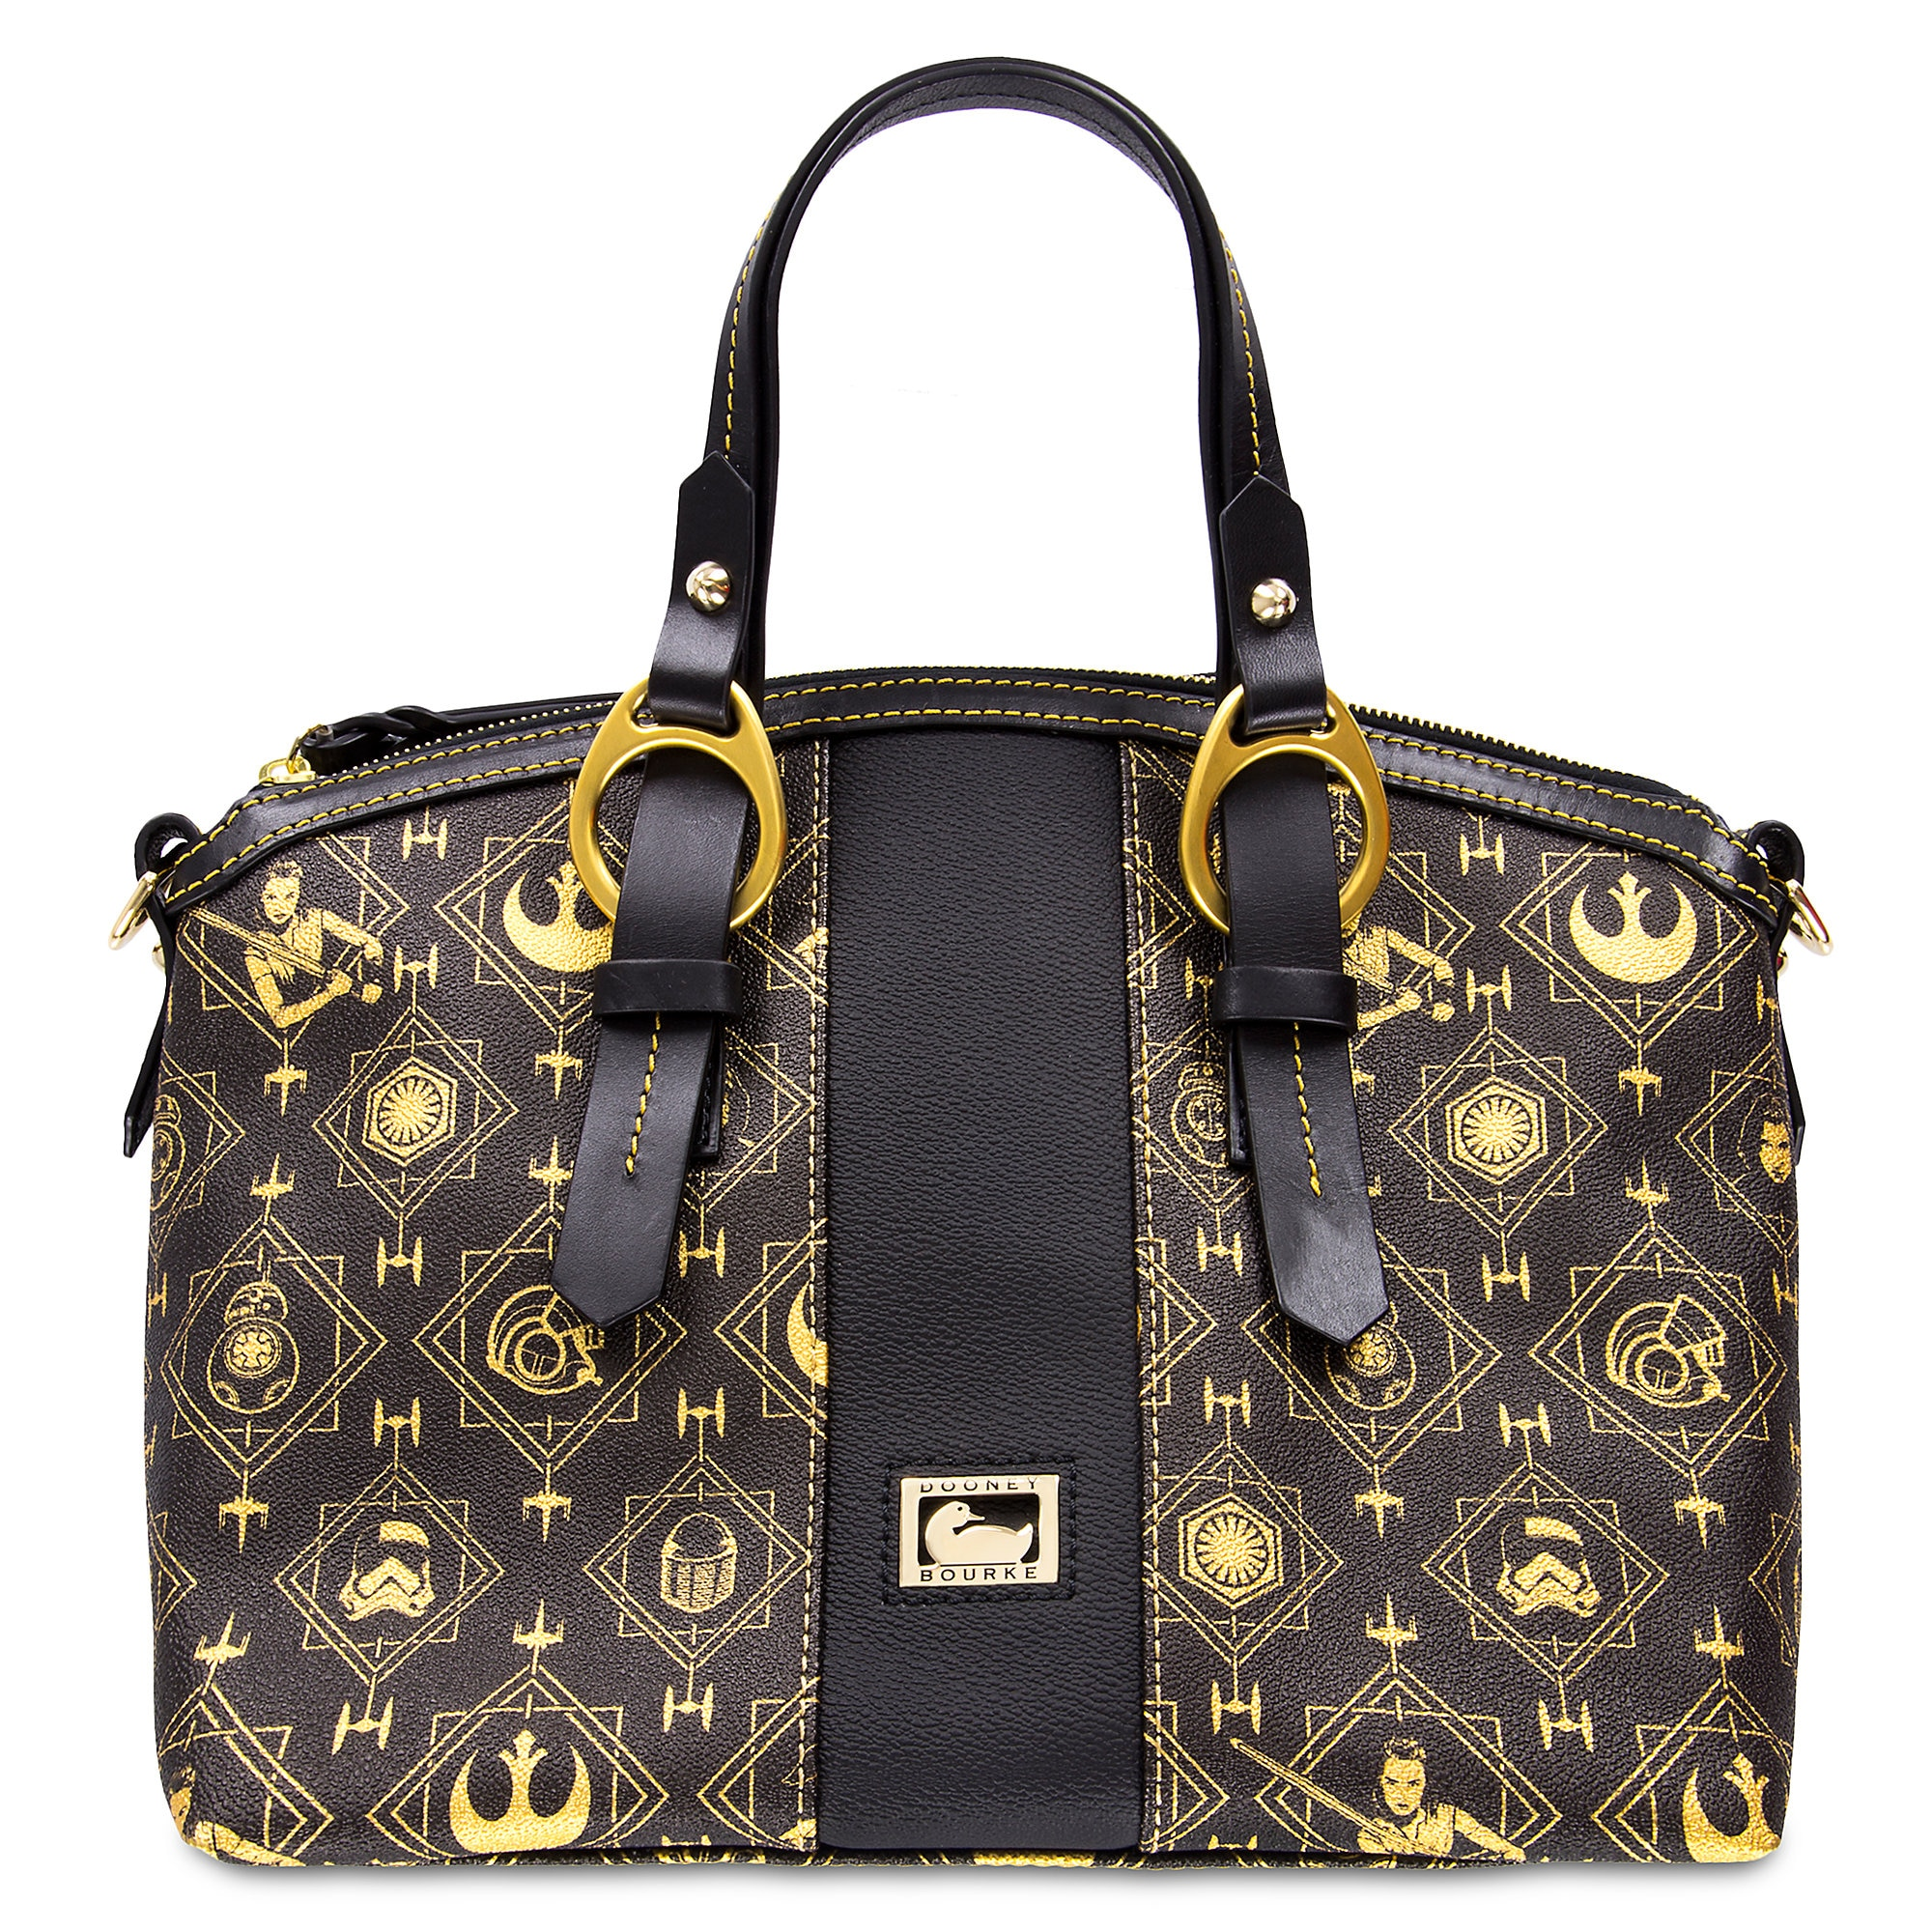 Star Wars: The Last Jedi Satchel by Dooney & Bourke